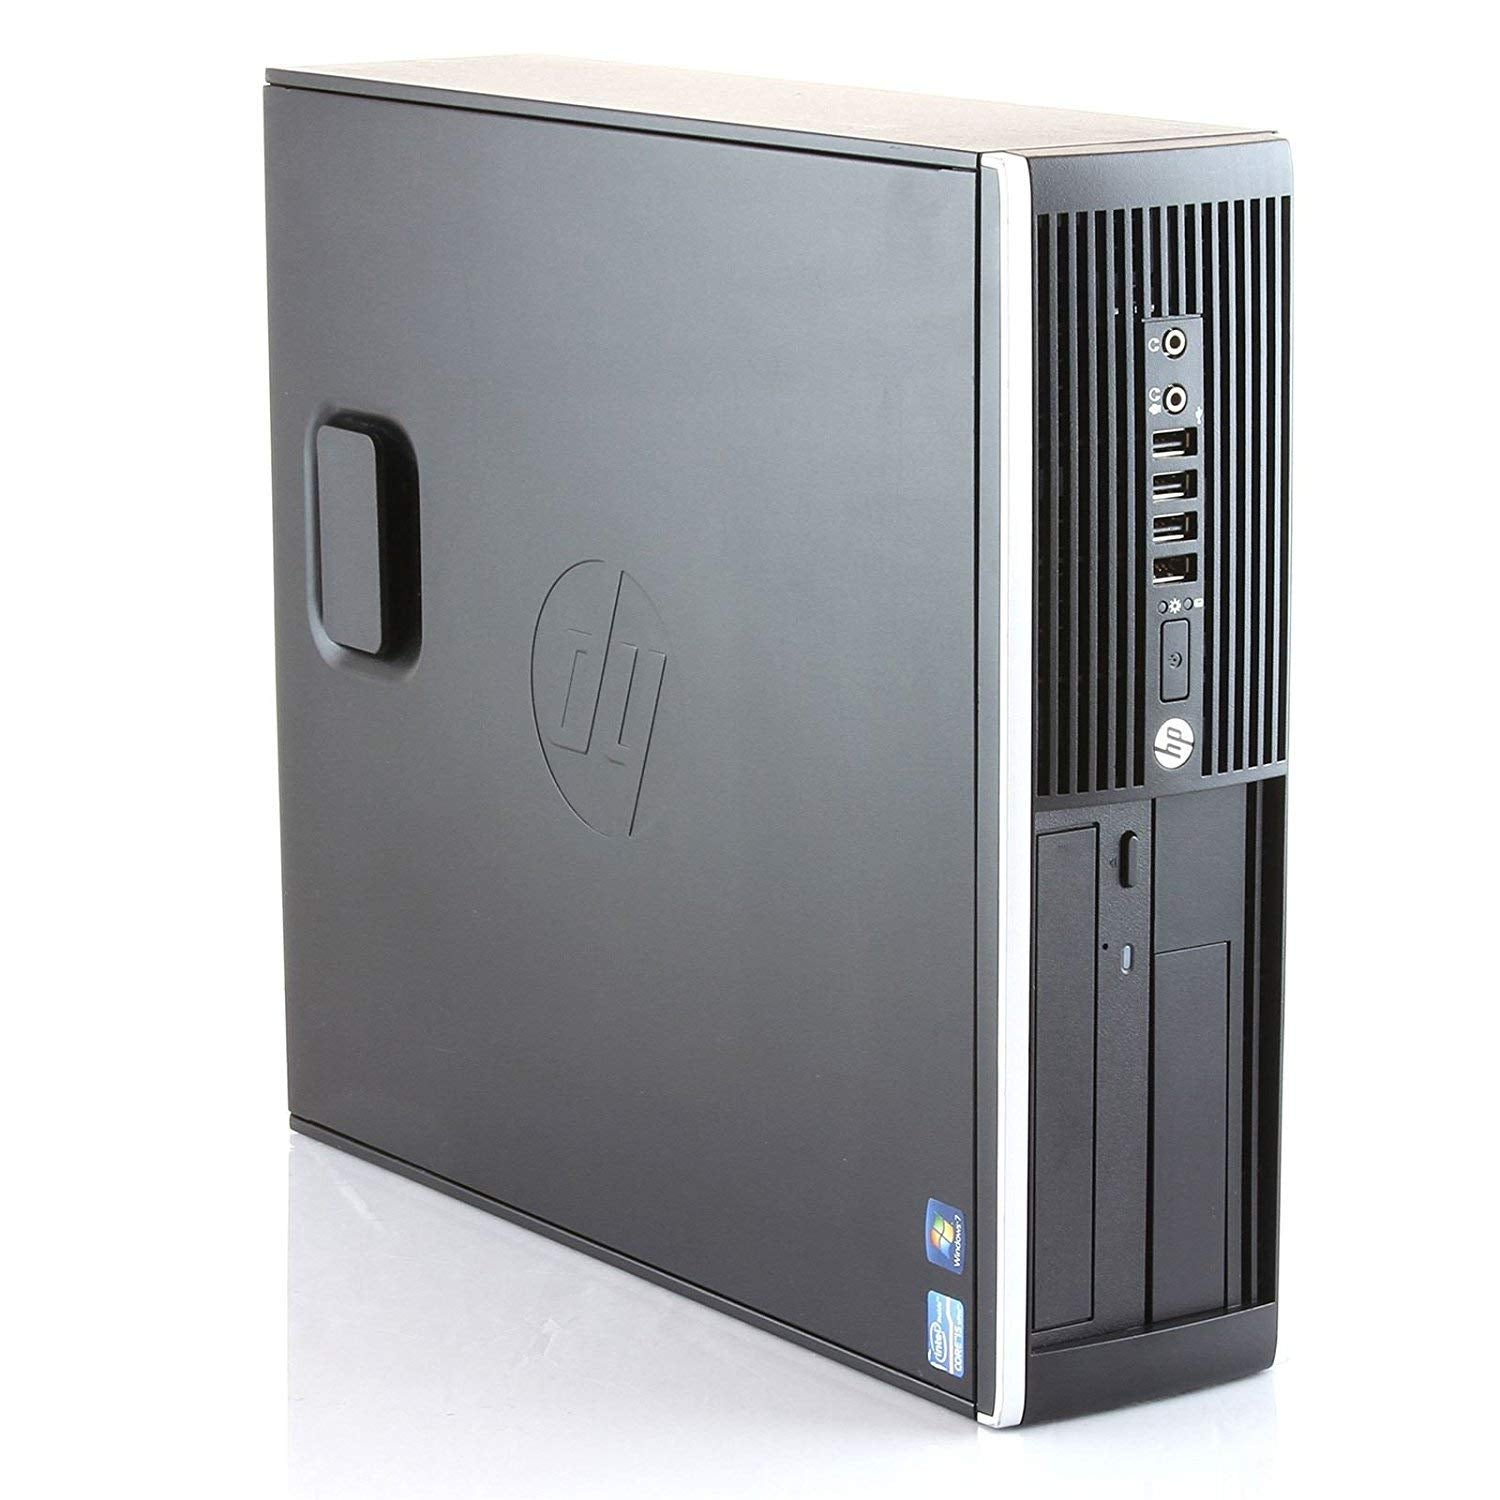 Hp Elite 8300-PC-desktop (Intel i5-3470,3,2,DVD, 8 hard GB RAM, 500 gb hard GB, WIFI PCI Win7PRO) (REFURBISHED)